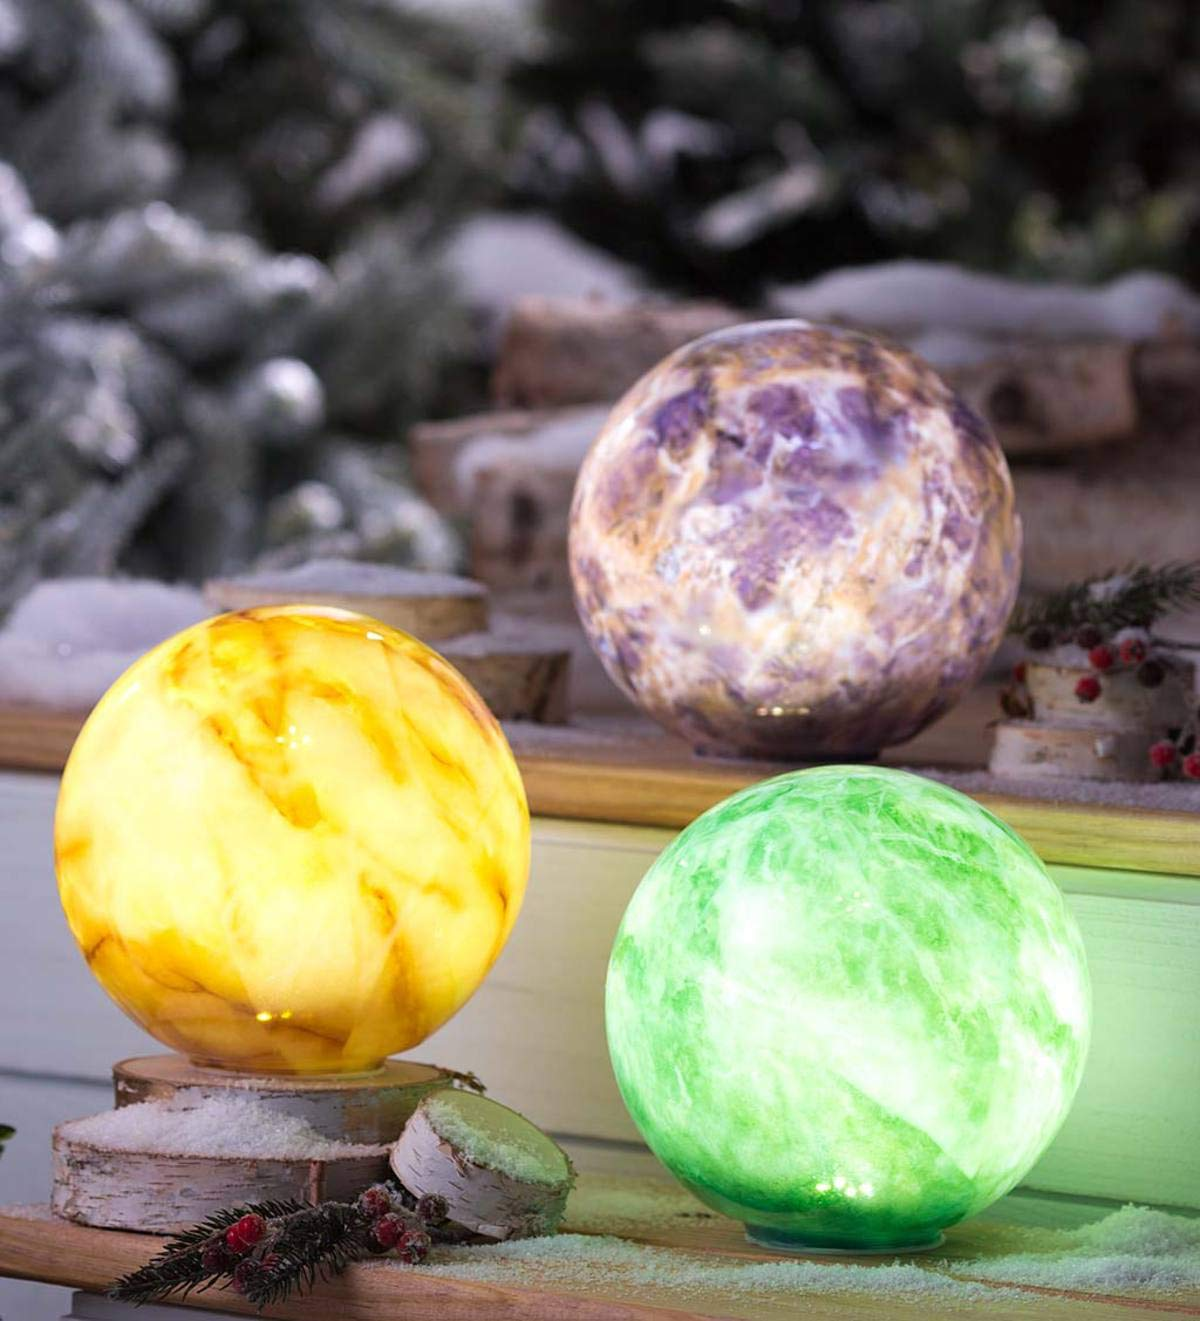 Plow & Hearth Glowing Elements Glass Garden Globes, Set of 3-7.5 Dia